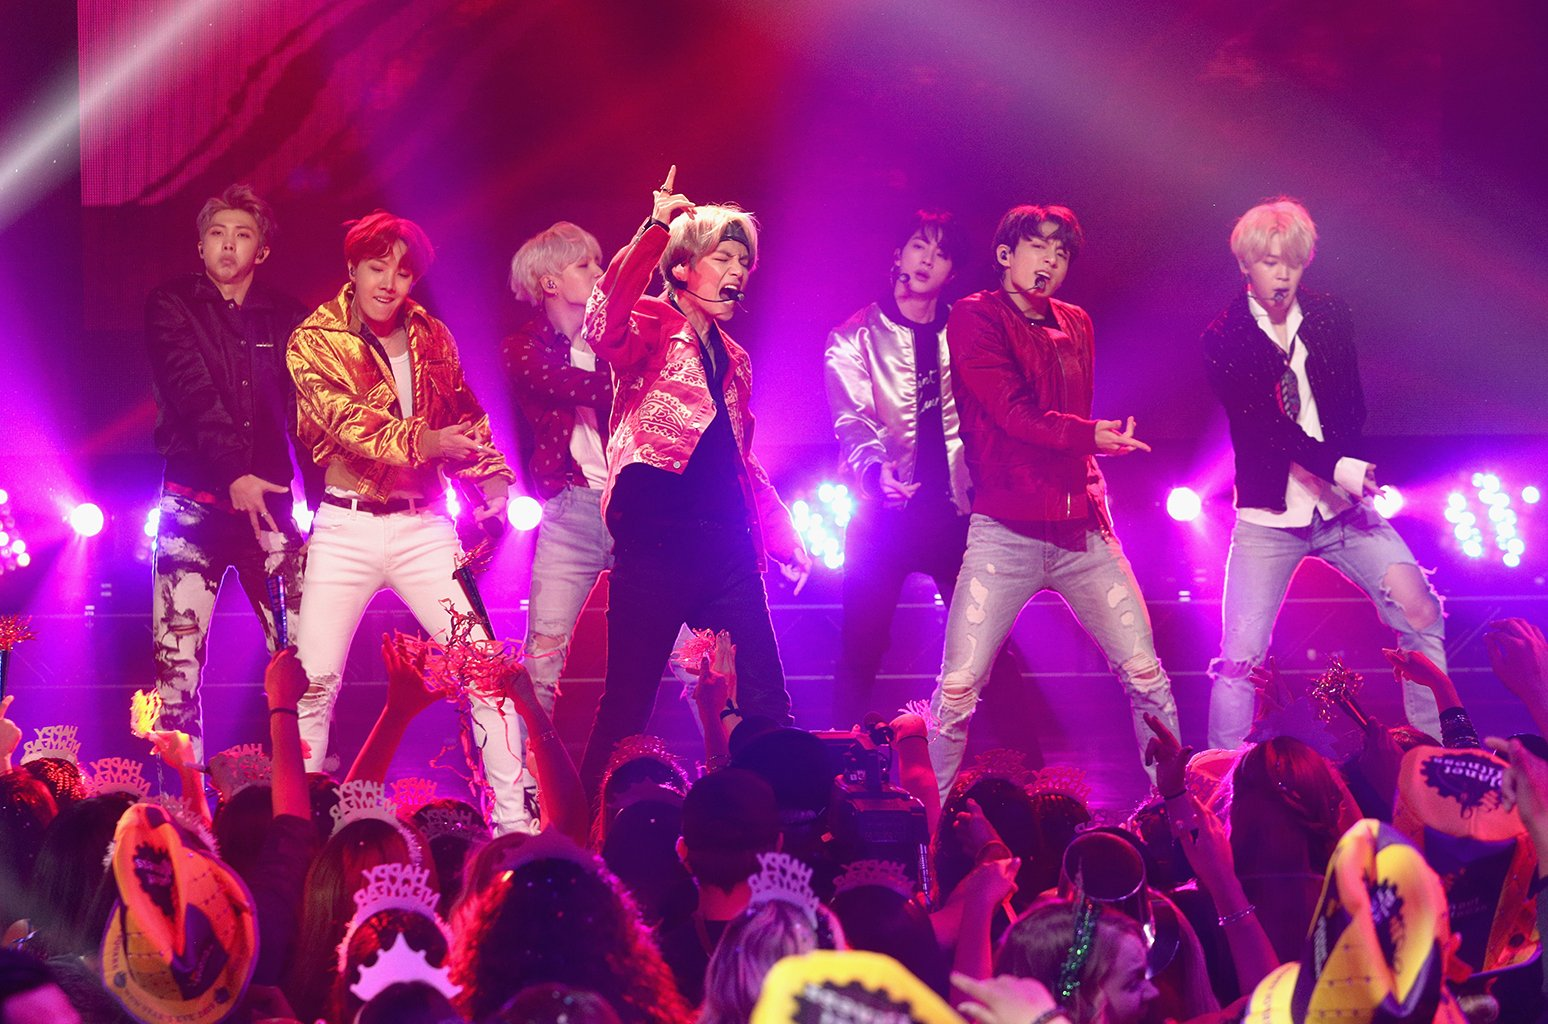 'BTS: Burn The Stage' is coming soon https://t.co/GqLkR987N5 https://t.co/V13tCnthWN